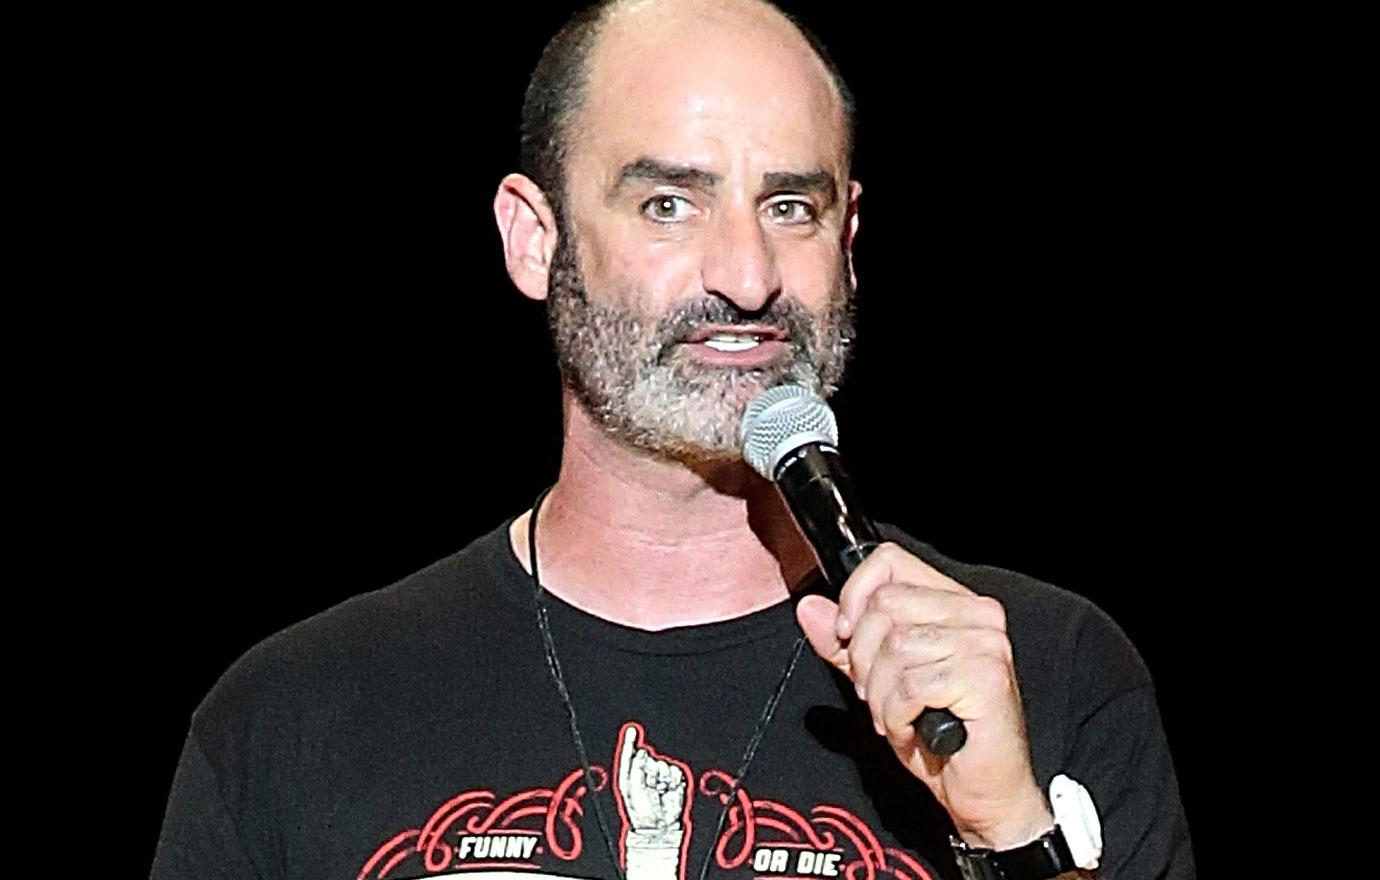 Comedian Brody Stevens Commits Suicide By Hanging